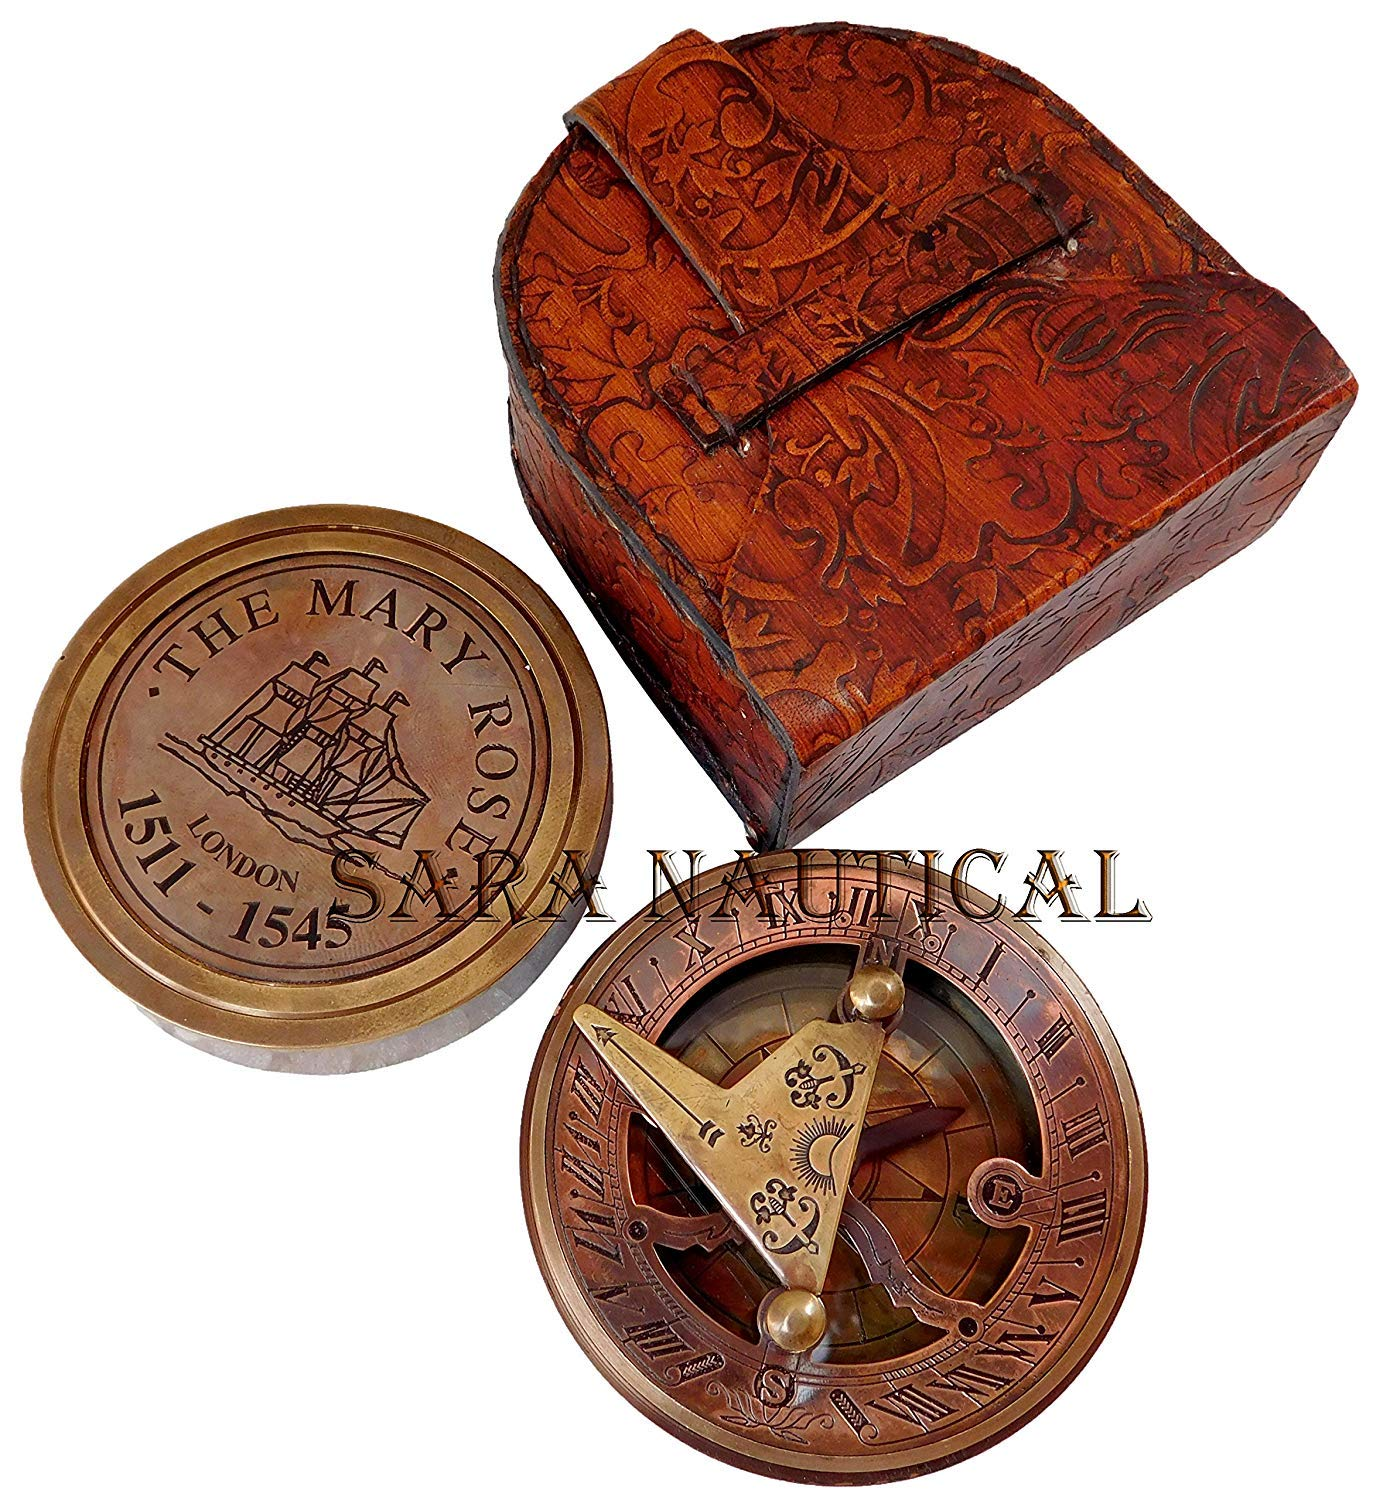 Sara Nautical Steampunk for Solid Brass Compass in Fitted Leather Box. C-3052